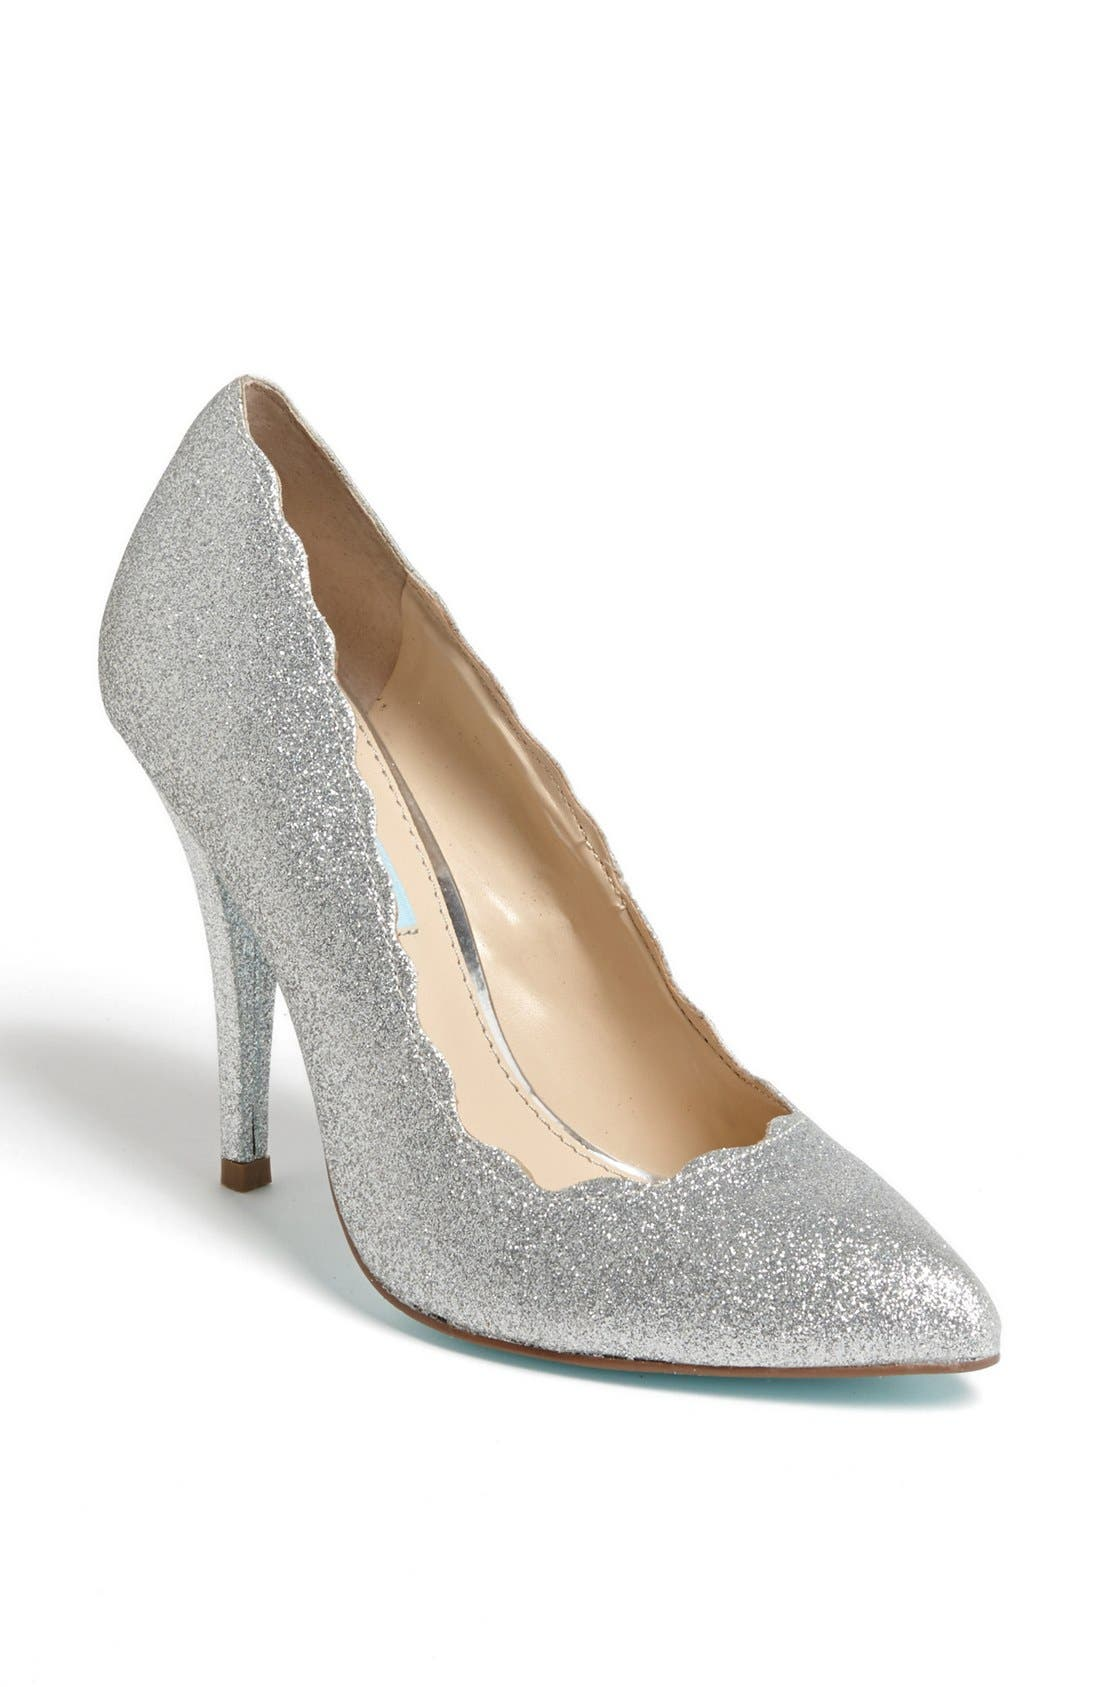 Alternate Image 1 Selected - Blue by Betsey Johnson 'Altar' Pump